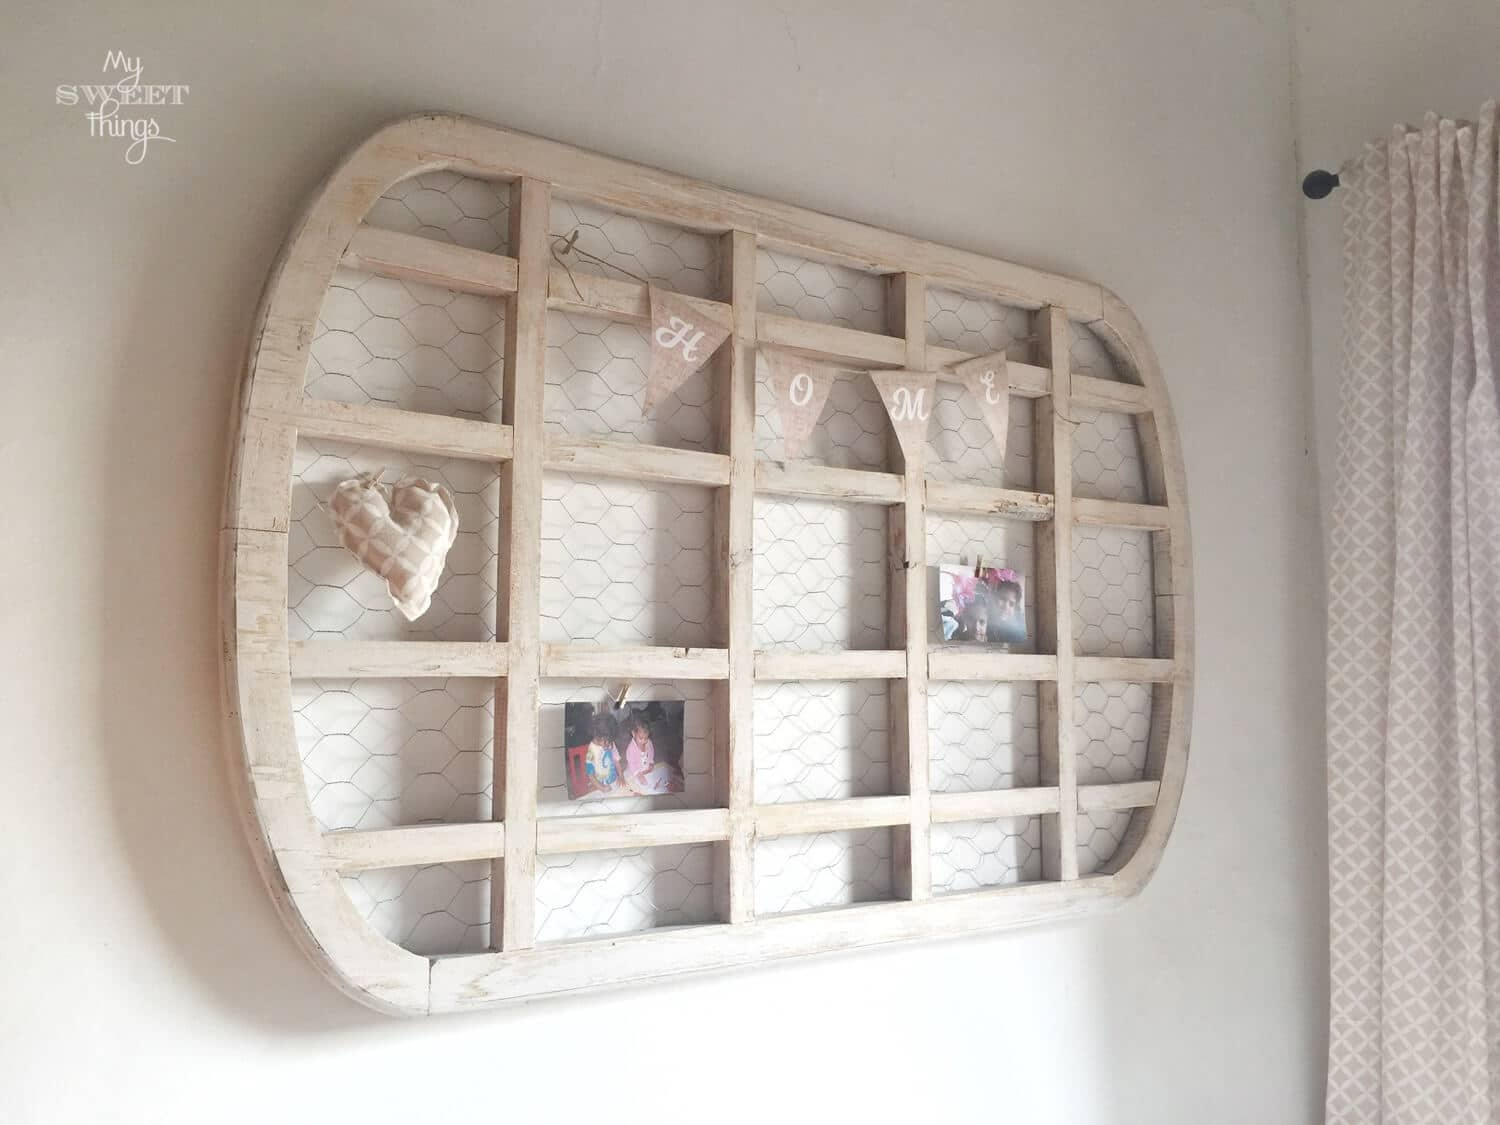 Upcycled Table Into Wooden Wall Display · Via www.sweethings.net